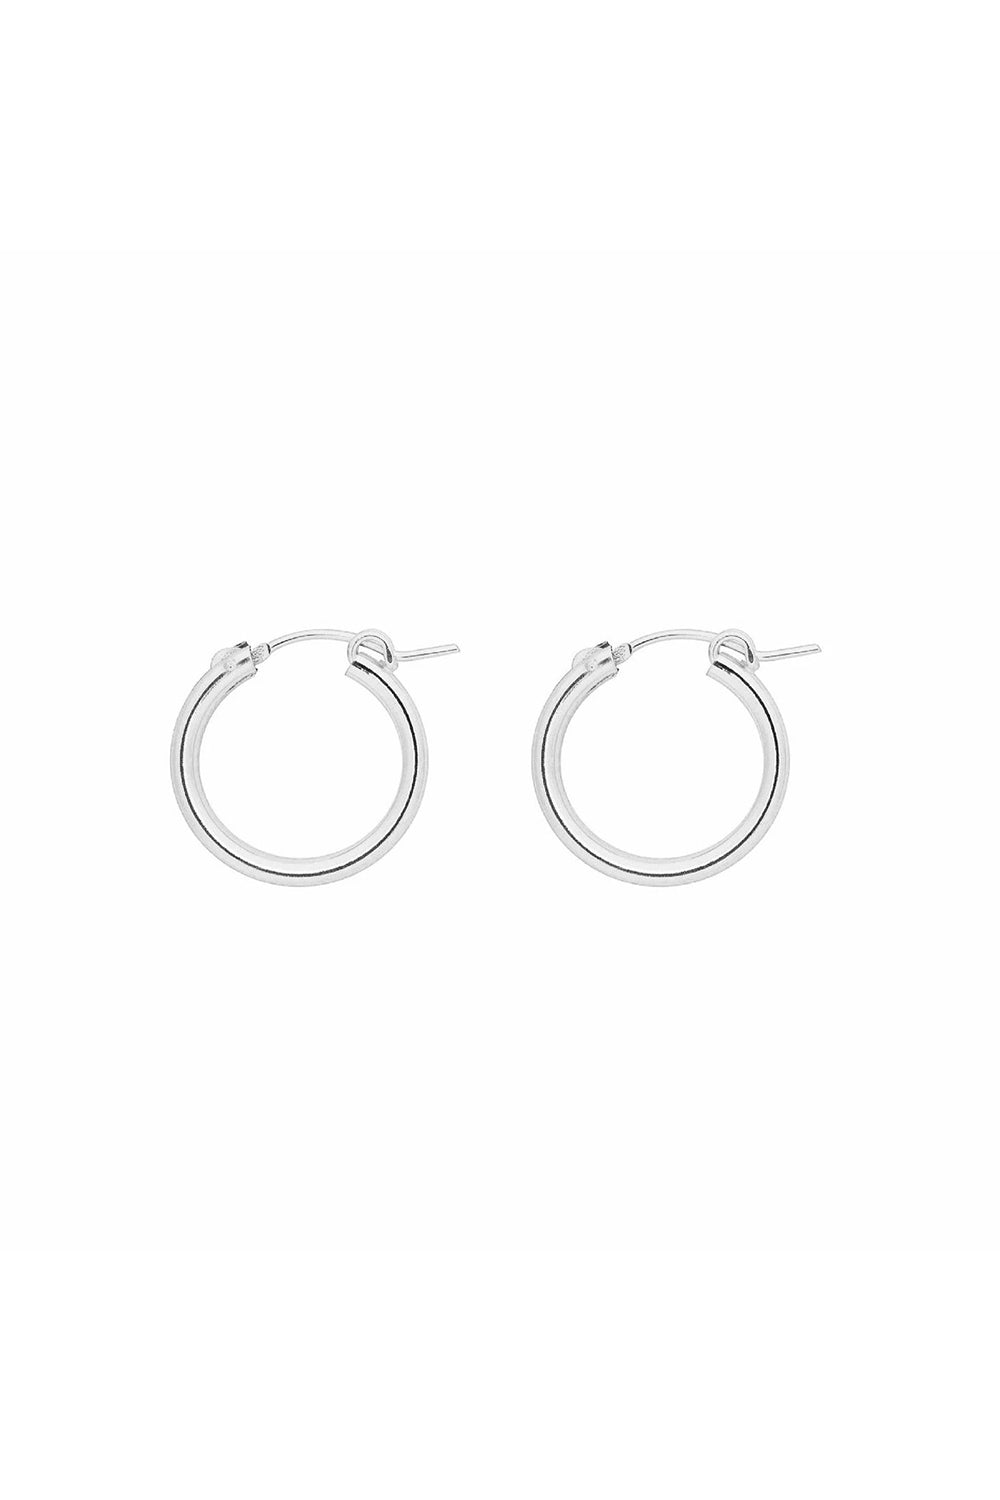 LOVE ISABELLE - Isabelle Hoops - Australian Fashion and Accessories Boutique - Faid Store